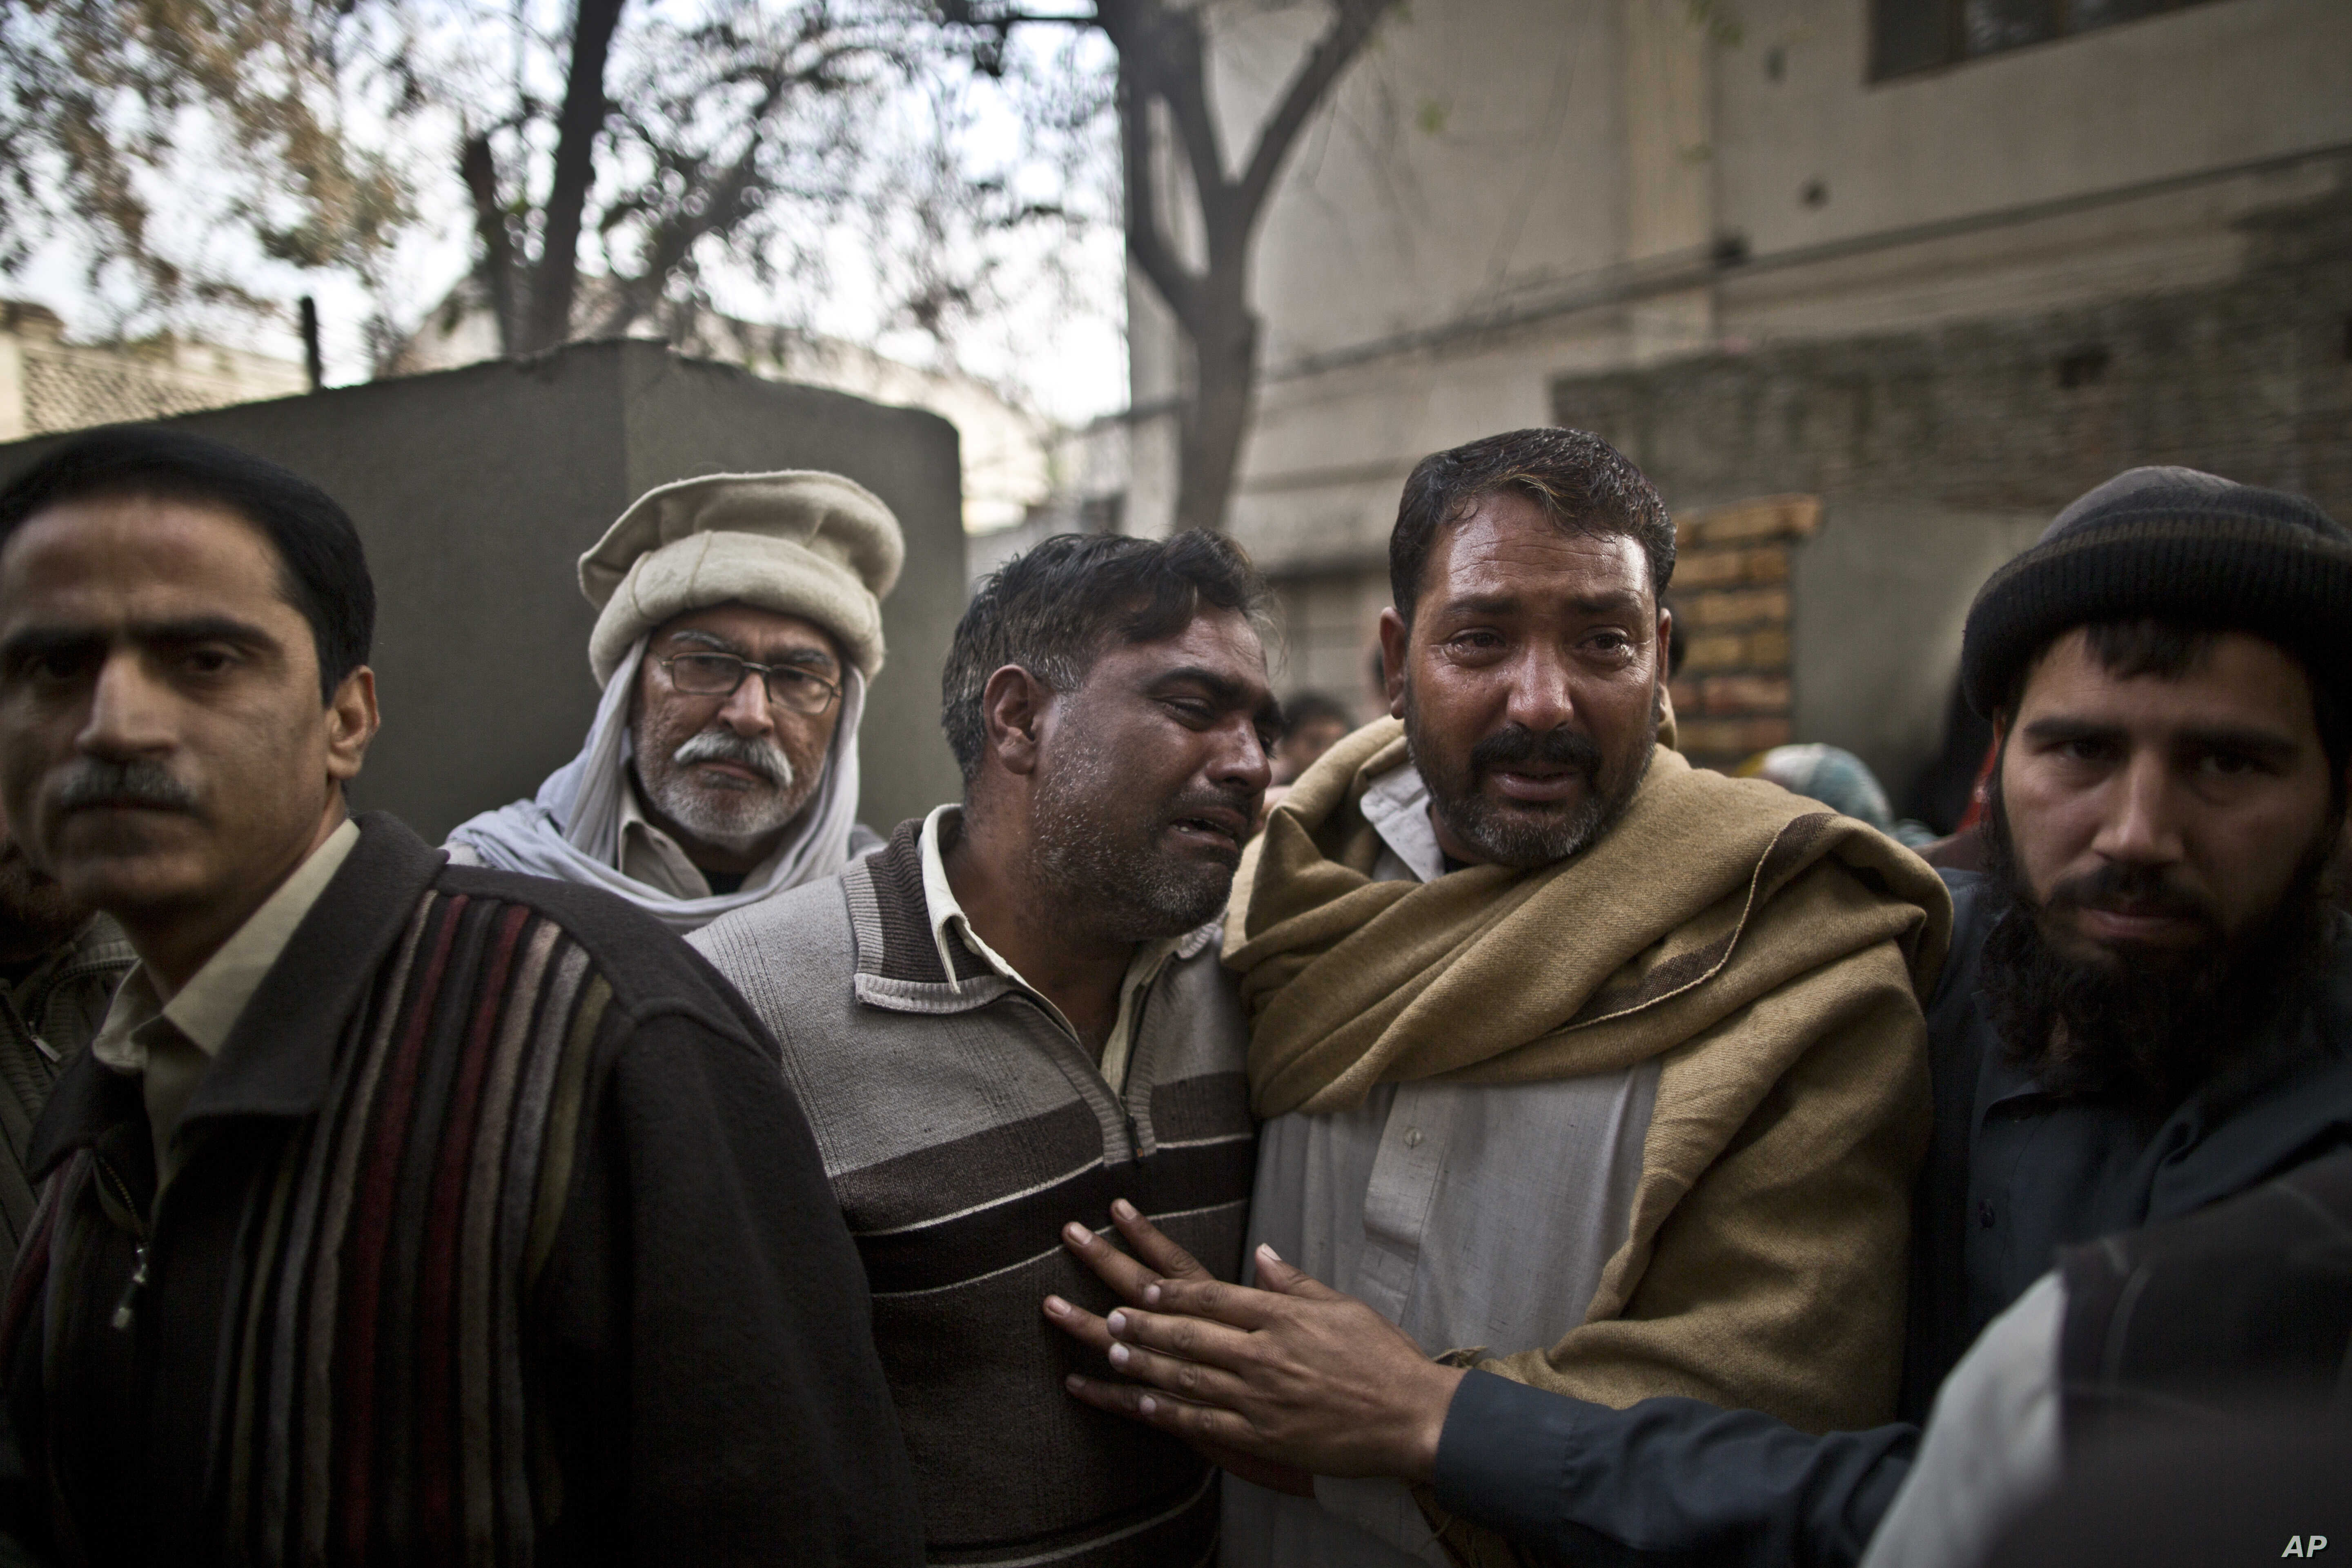 Uncles of a student who was killed in a suicide bombing comfort each other as his body is loaded to an ambulance for burial, at a hospital in Rawalpindi, Pakistan, Jan. 20, 2014.